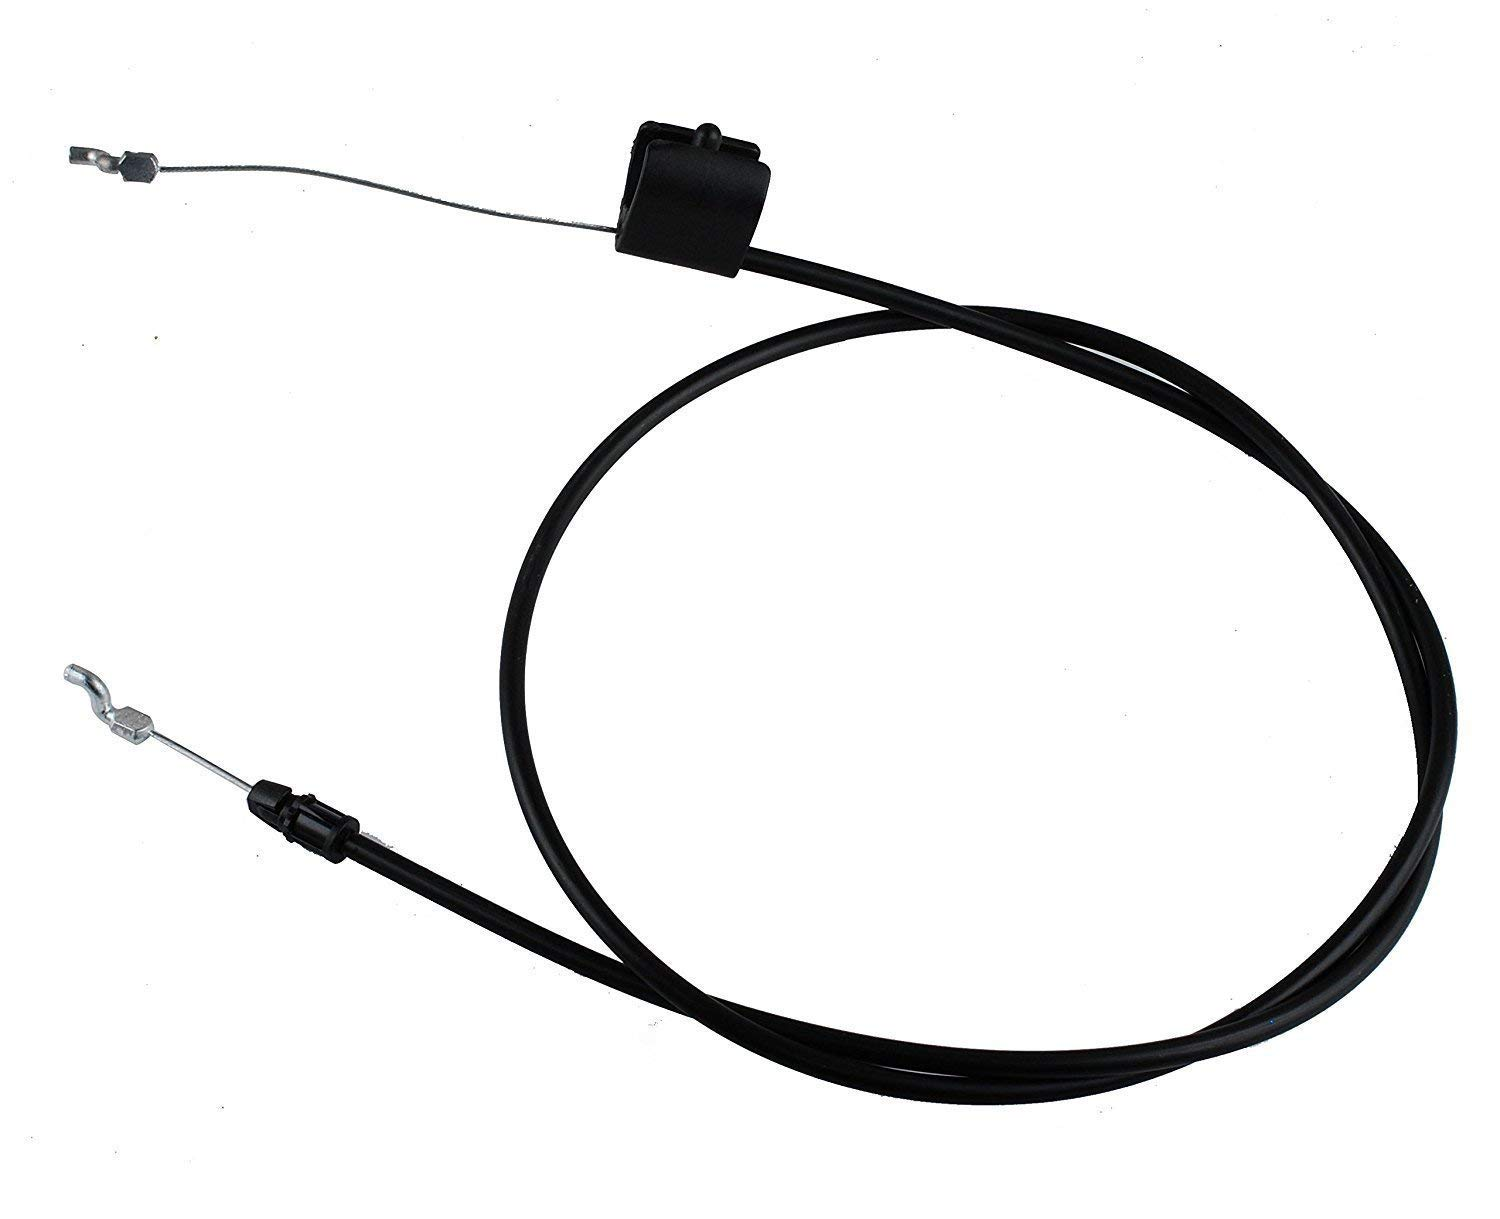 Aquiver Auto Parts New Lawn Mower Throttle Cable 158152 582991501 Engine Zone Control Cable for Husqvarna Poulan Craftsman Weed Eater